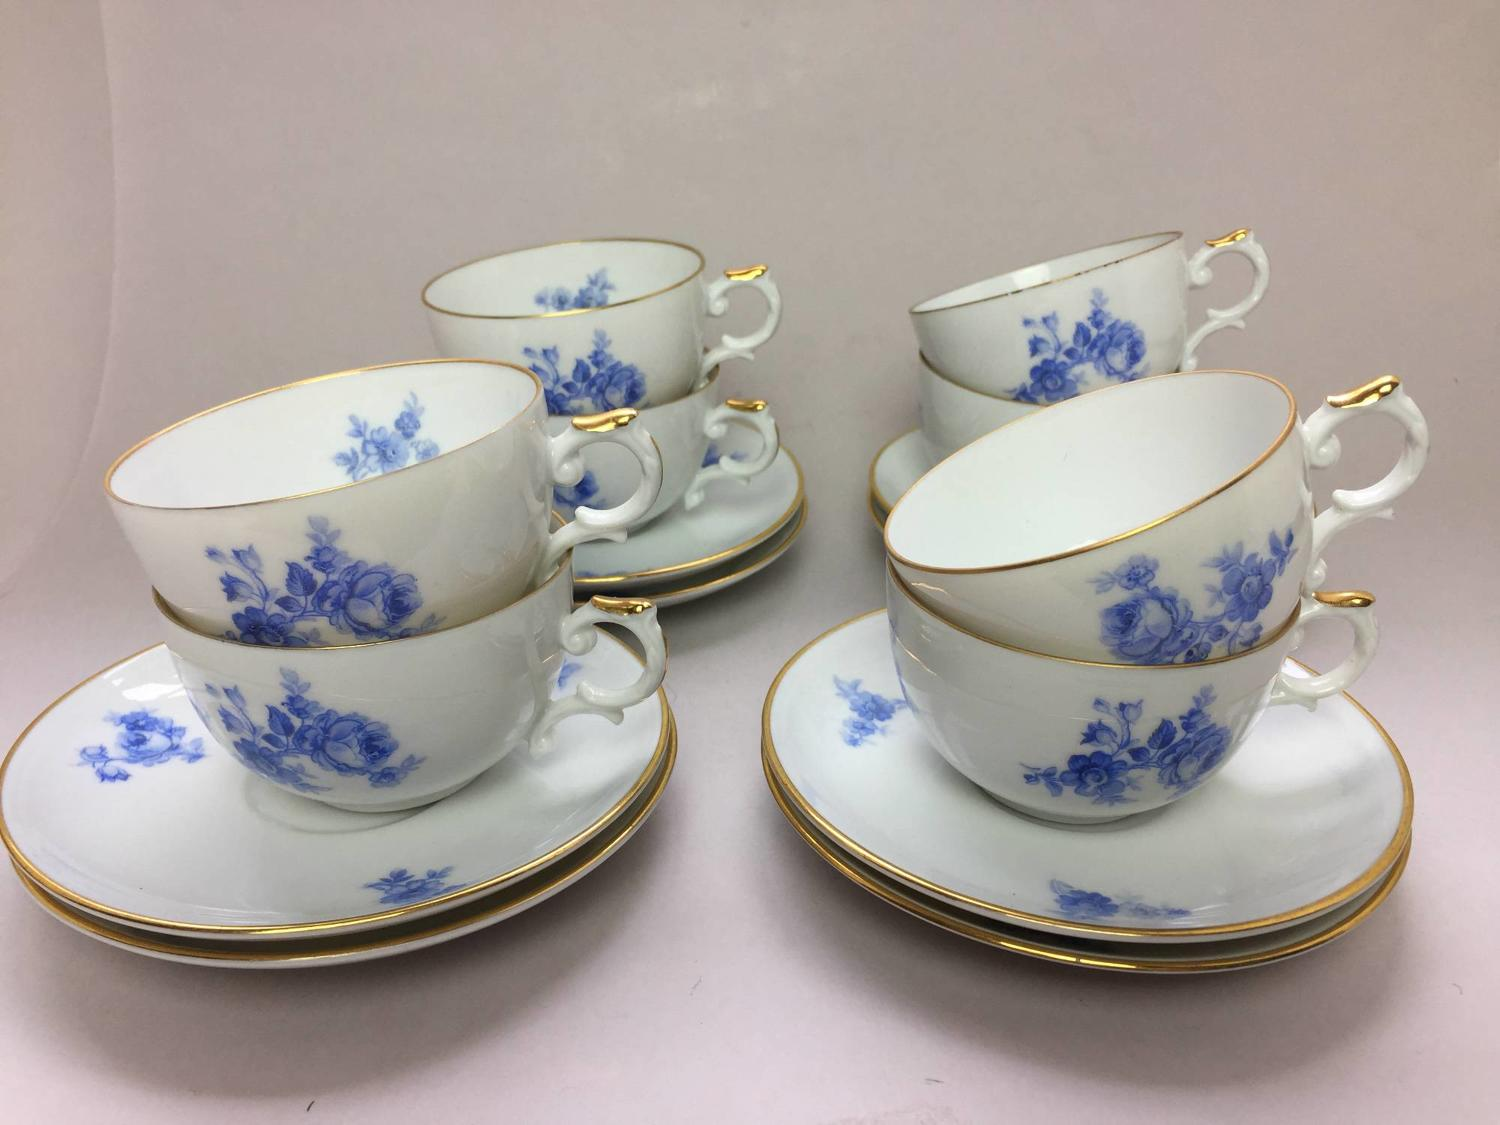 Eight Furstenberg Porcelain Cups & Saucers